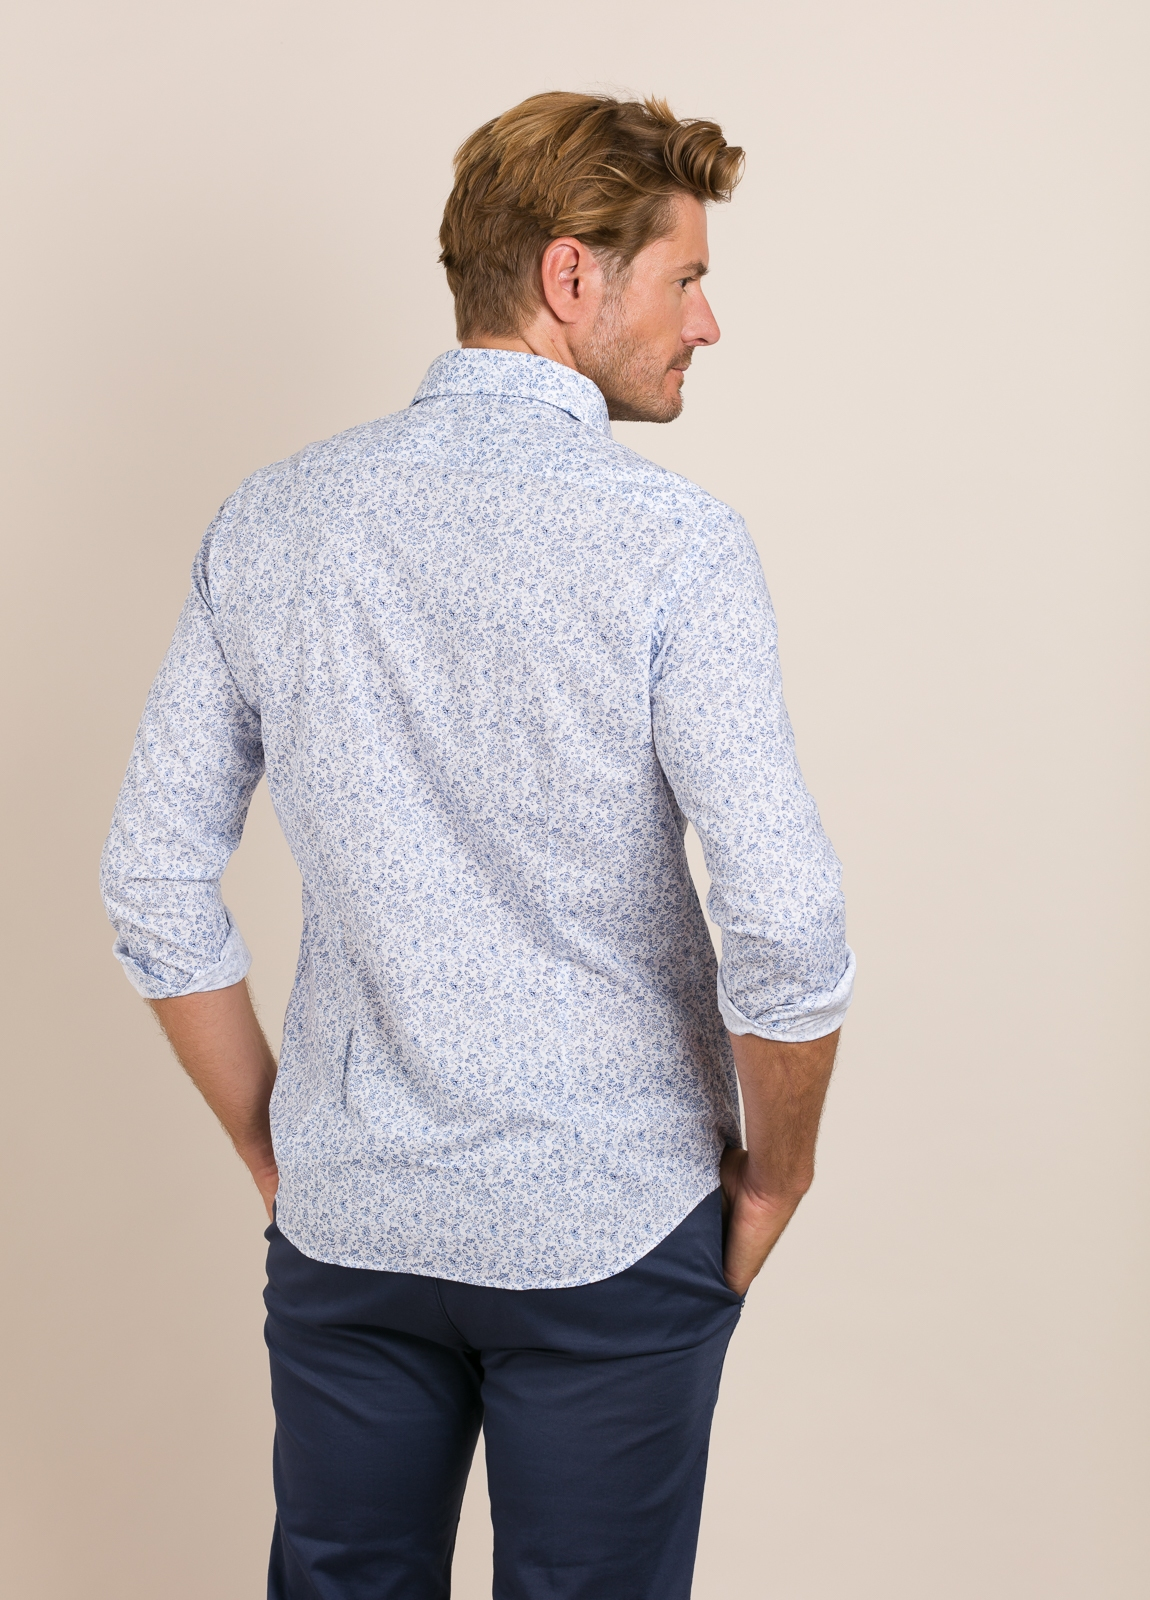 Camisa Casual Wear FUREST COLECCIÓN slim fit. - Ítem1